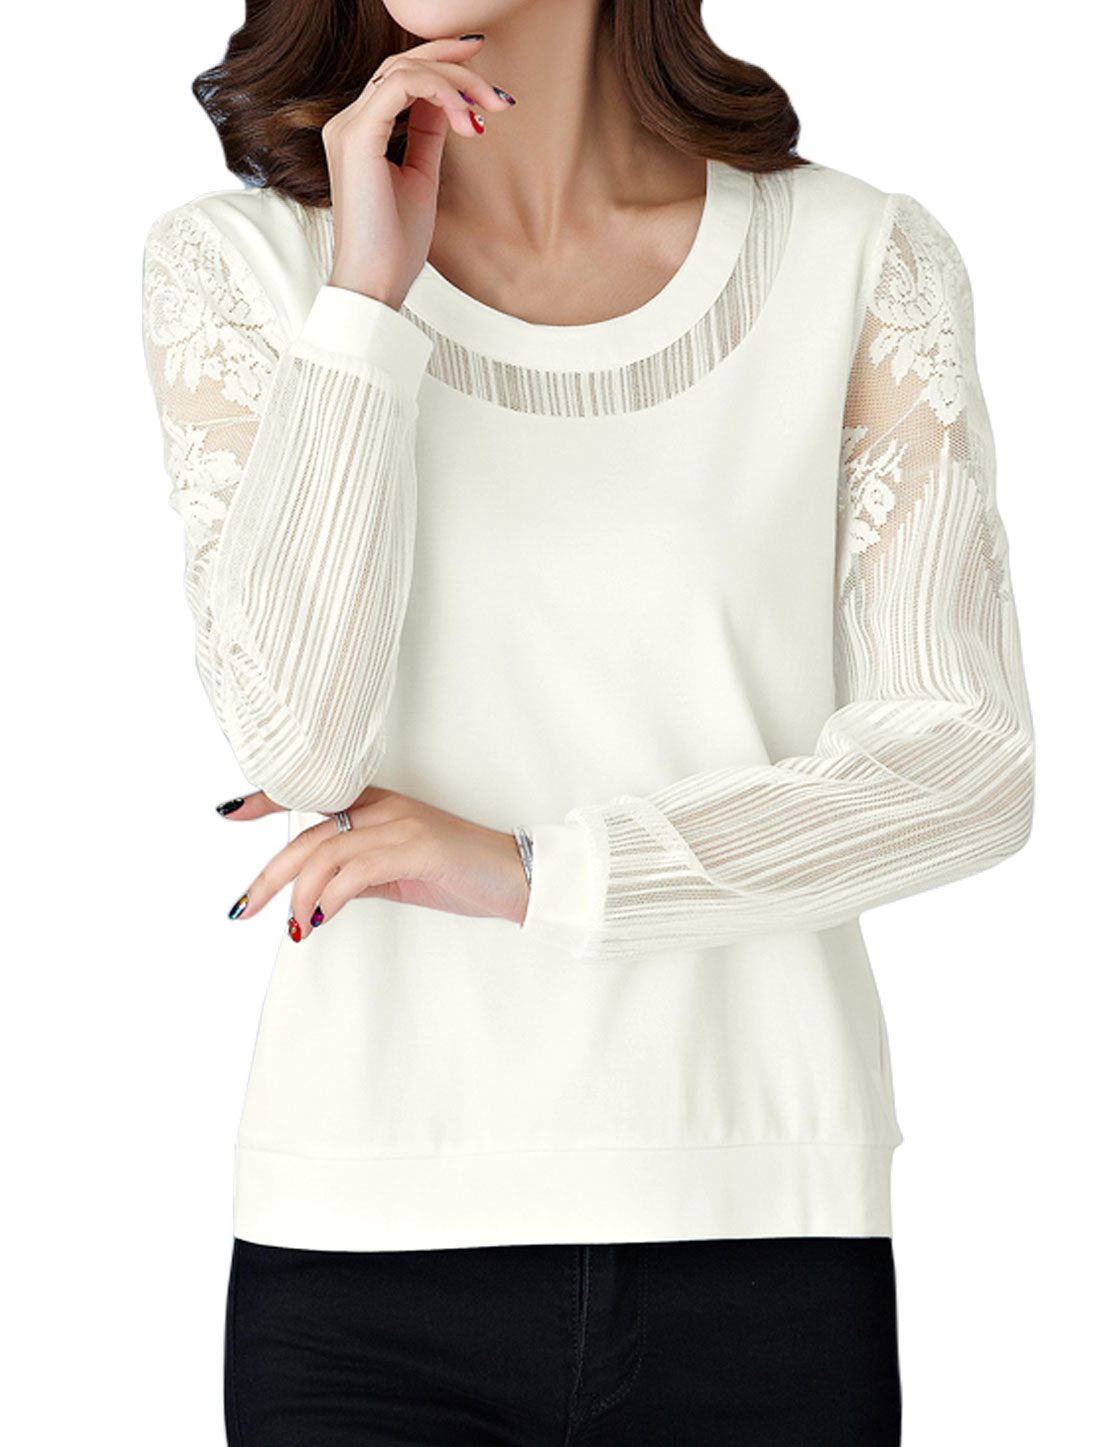 Women Scoop Neck See Through Long Sleeves Floral Lace Panel Top White M